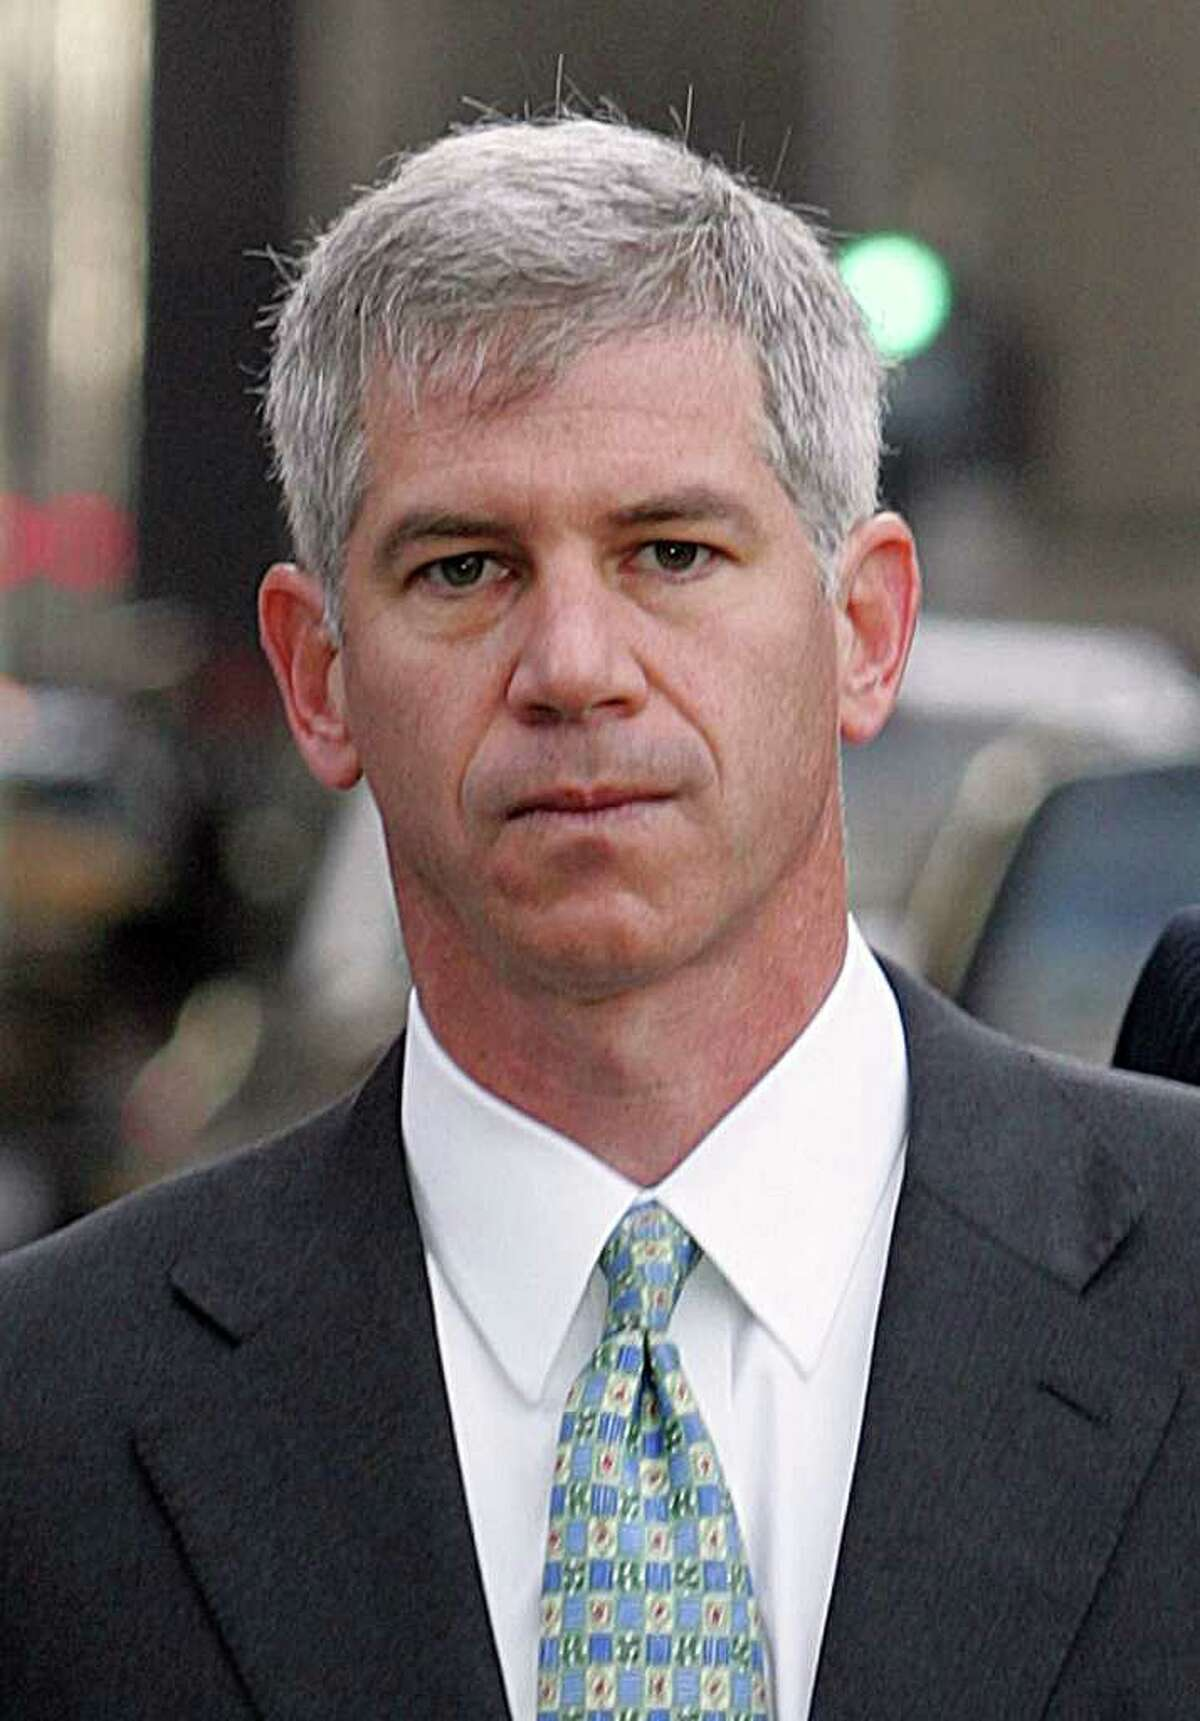 (FILES) Former Enron Chief Financial Officer Andrew Fastow arrives at the Bob Casey Federal Courts Building in Houston, Texas, in this March 8, 2006 file photo. The Federal Bureau of Prisons reported on May 18, 2011 that Fastow has been transferred from prison to a halfway house. This is the last stage of incarceration before his scheduled release later in 2011. AFP PHOTO/James NIELSEN/FILES (Photo credit should read JAMES NIELSEN/AFP/Getty Images)